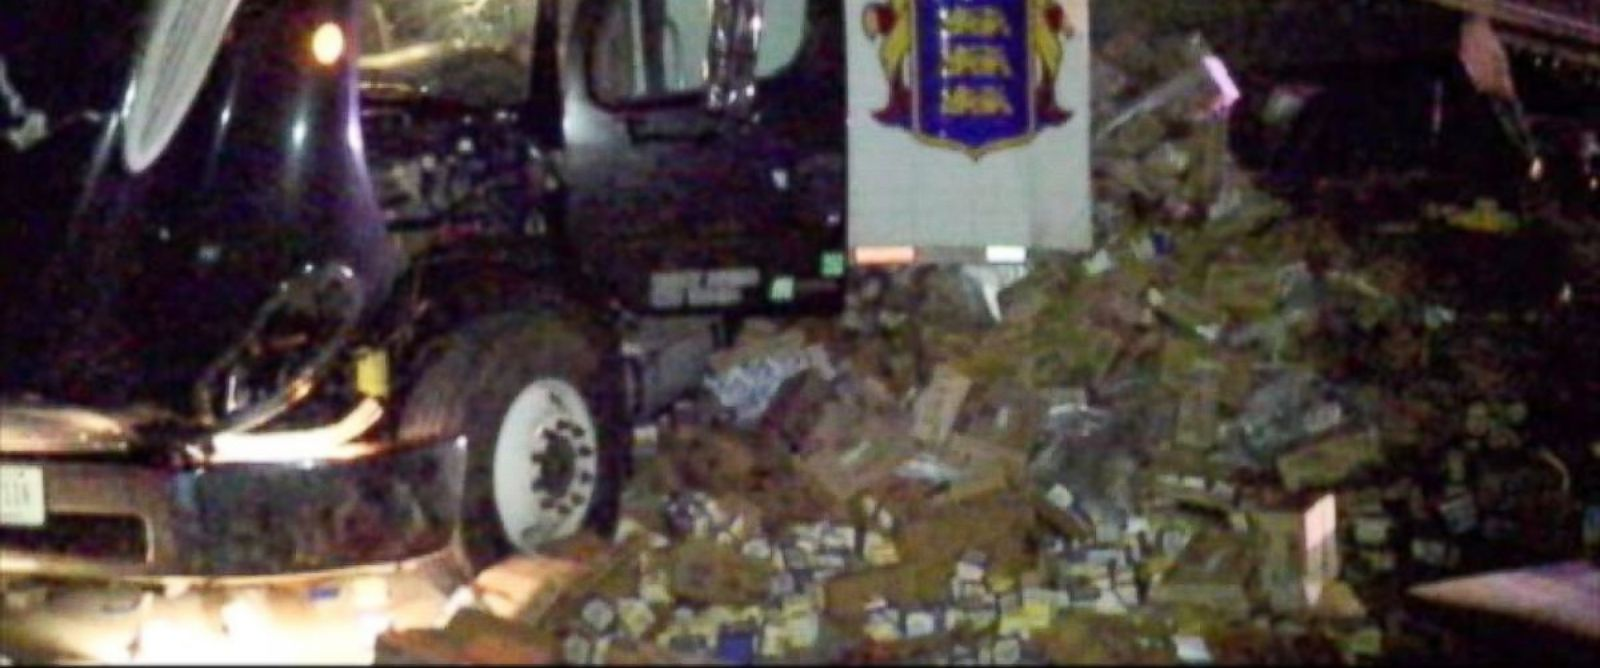 PHOTO: About 45,000 pounds of butter, whipped cream and other dairy products were splashed over an Indianapolis highway, creating a slippery mess.